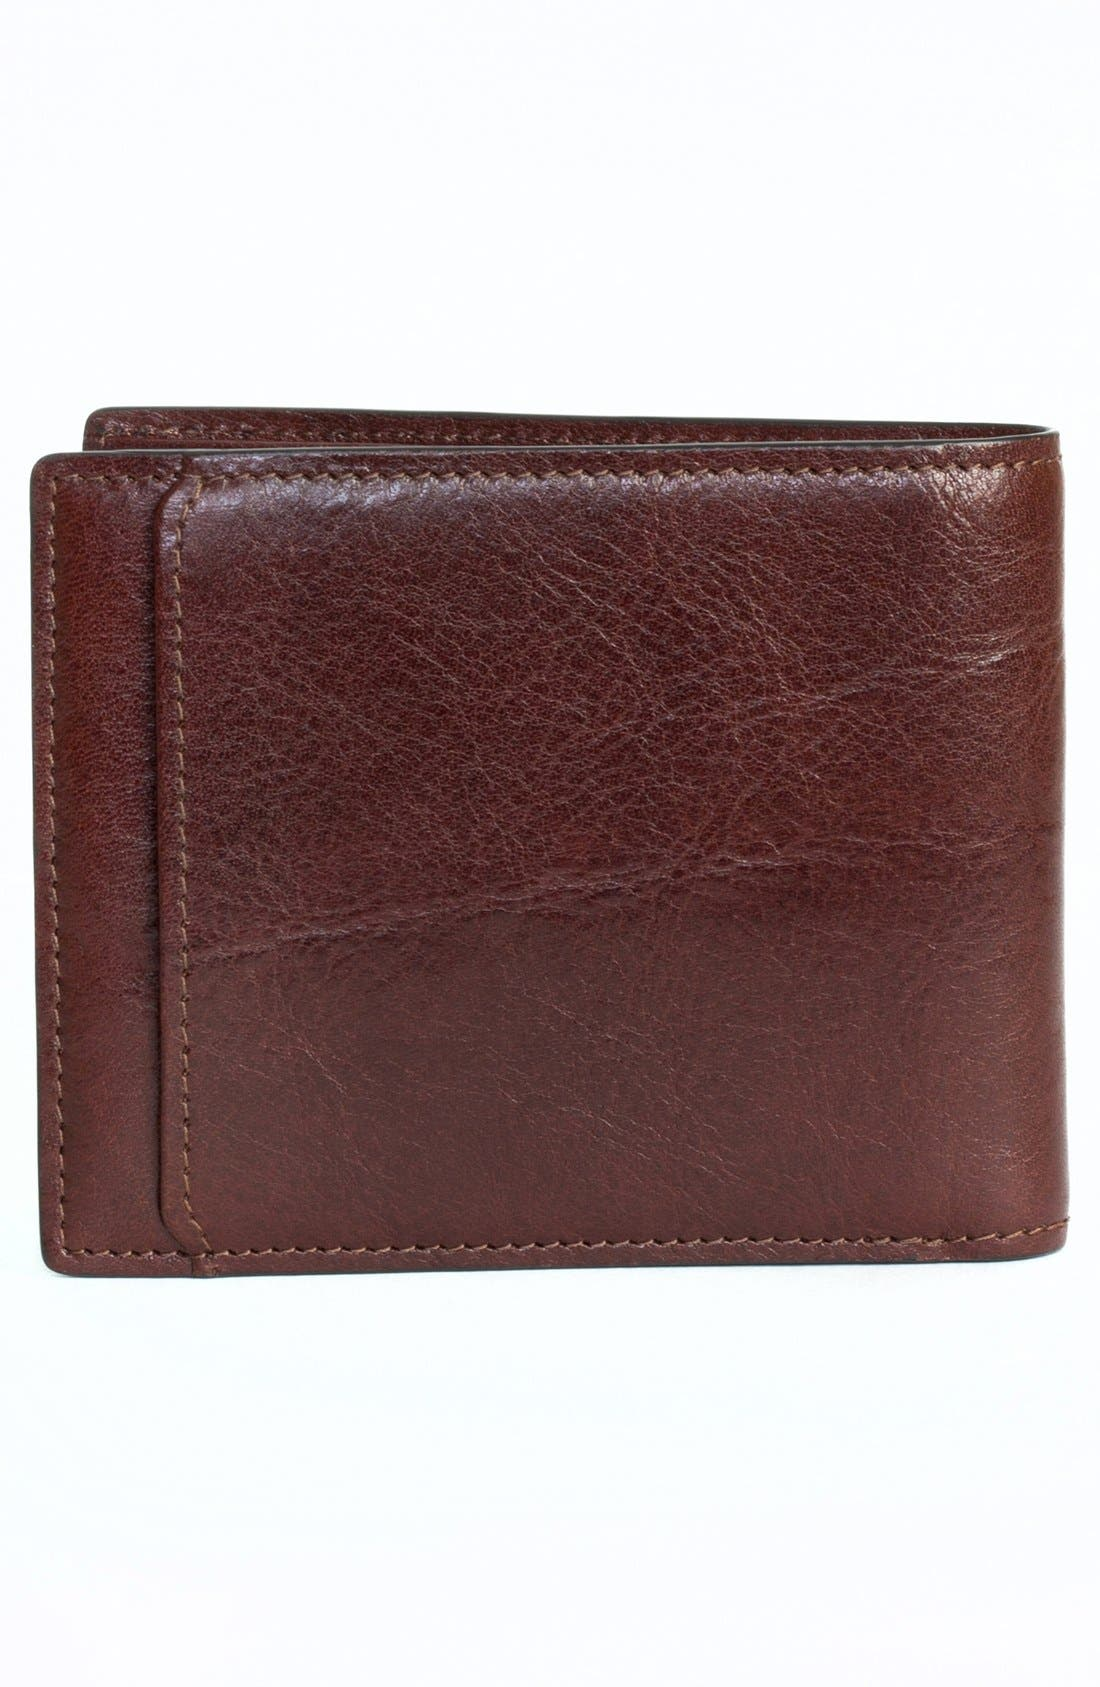 'Becker' Leather Wallet,                             Alternate thumbnail 2, color,                             215